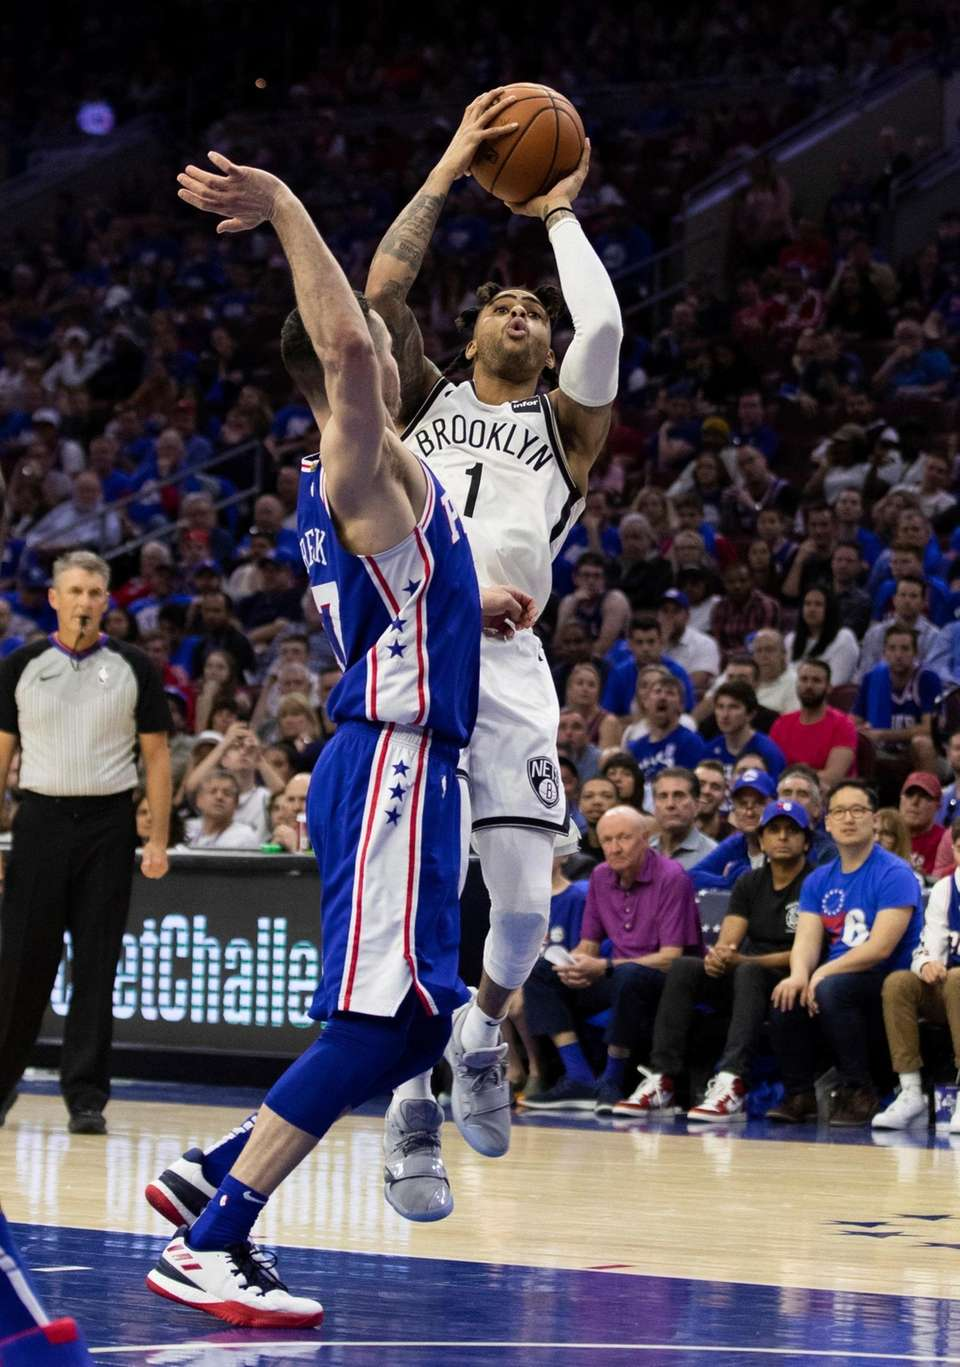 The Nets' D'Angelo Russell, right, shoots the ball